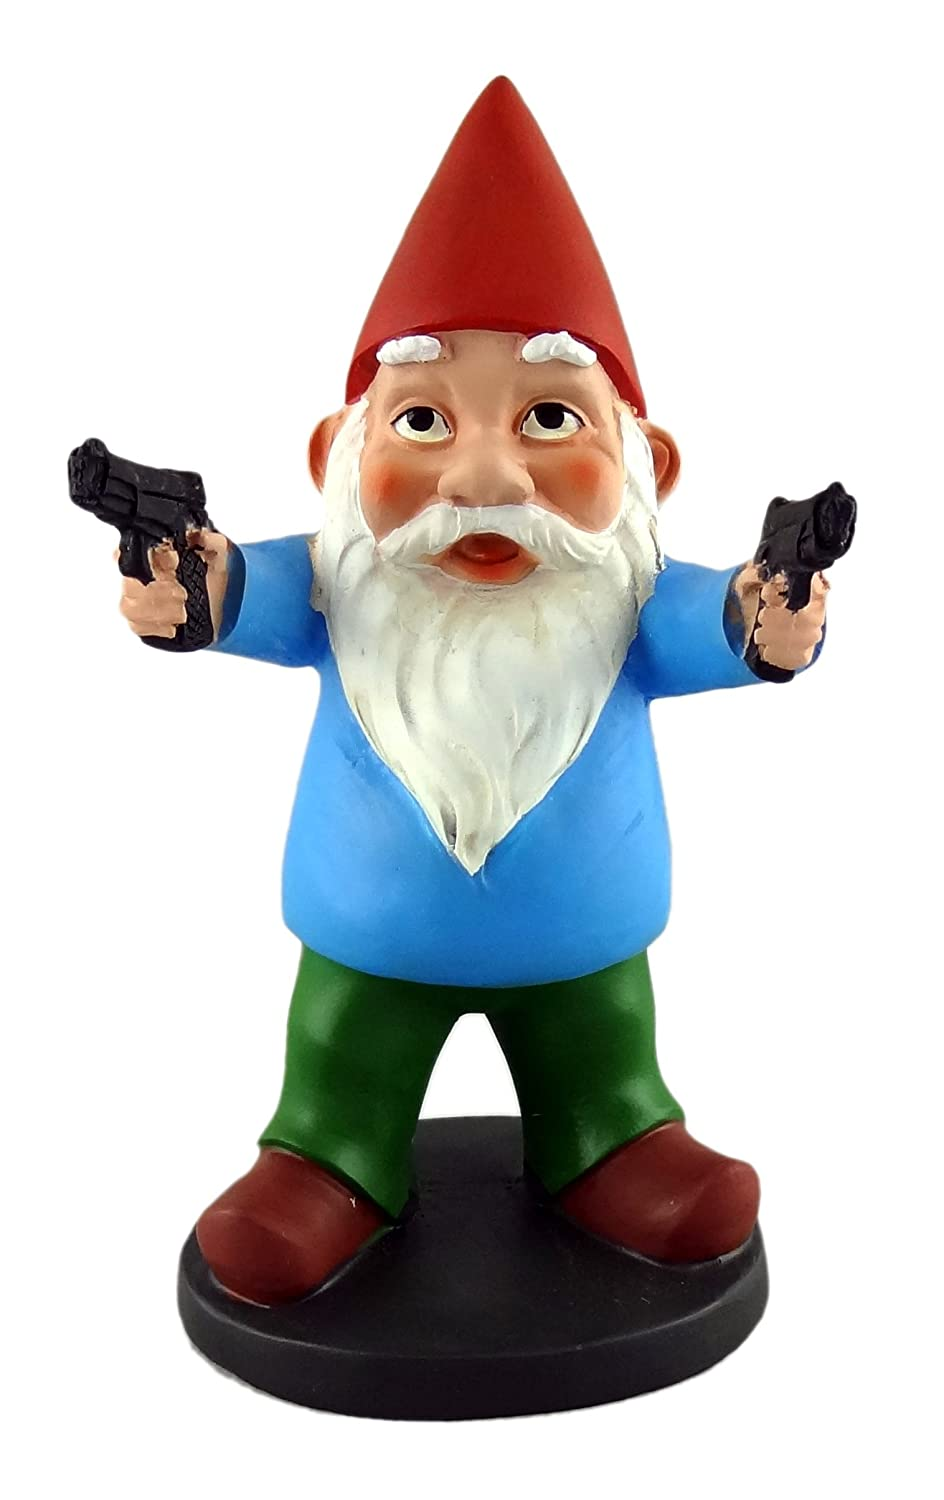 Funny Guy Mugs Garden Gnome Statue - Combat Gnome - Indoor/Outdoor Garden Gnome Sculpture for Patio, Yard or Lawn